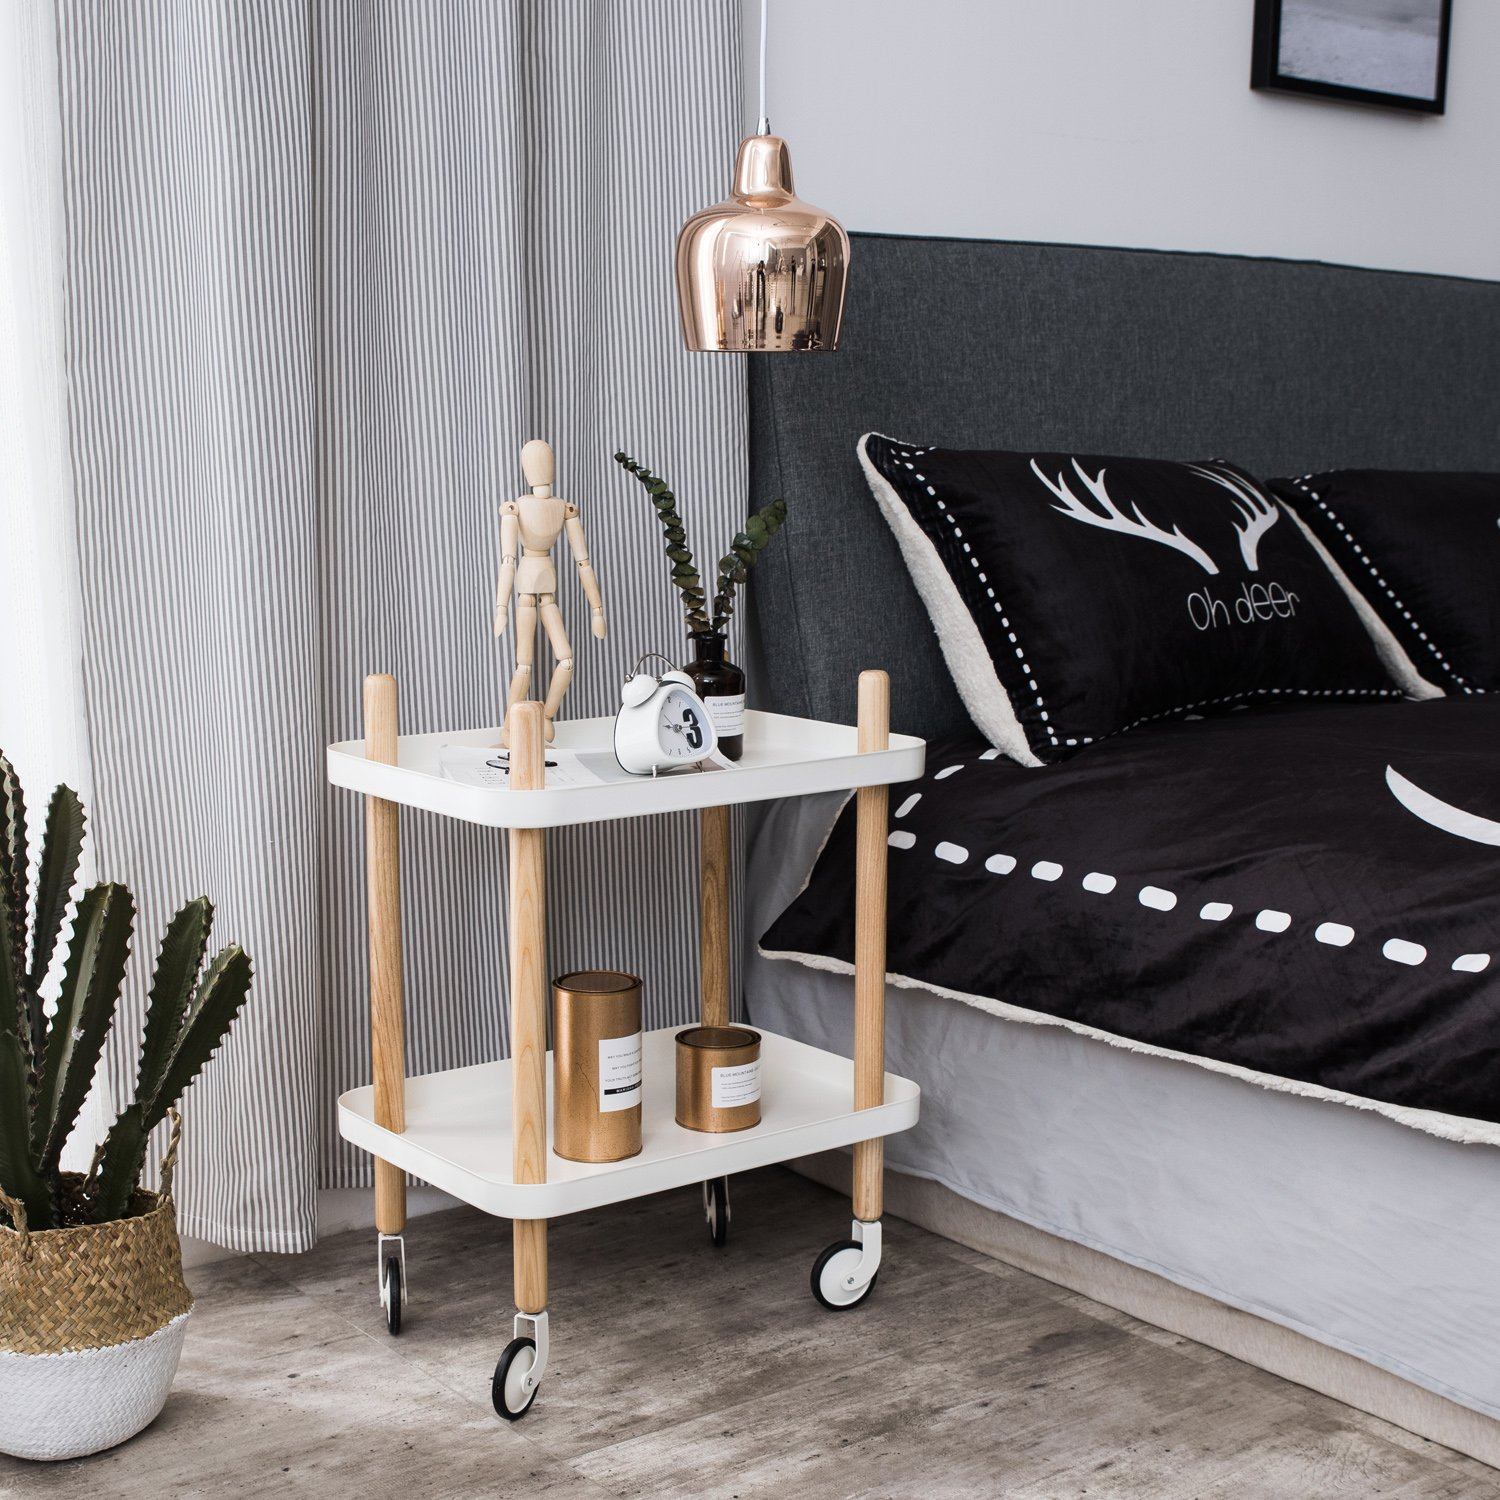 Sofa Side Table with wheels, Metal Tray End Table Living Room Bedroom, 2-Tier Nightstand Utility Rolling Cart, White by Clothink (Image #3)